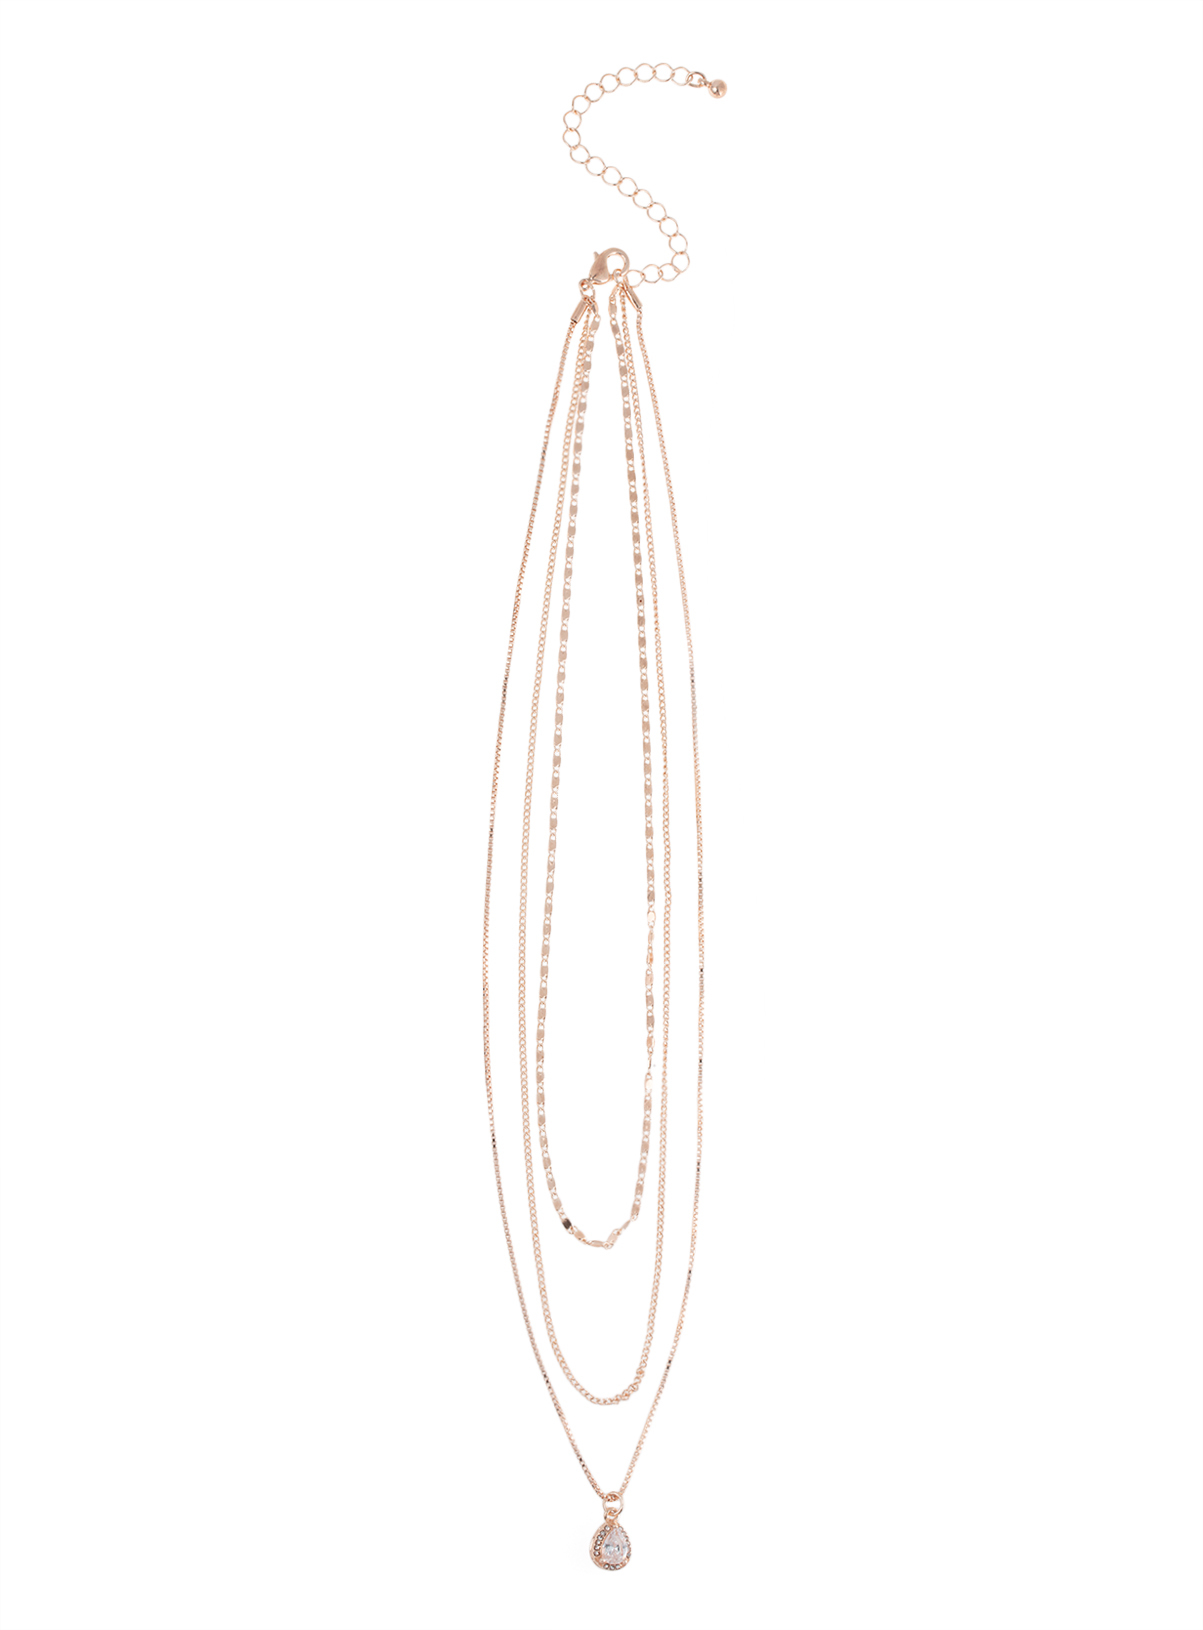 Wanted Rose Gold Tone Teardrop Earring & Necklace Set